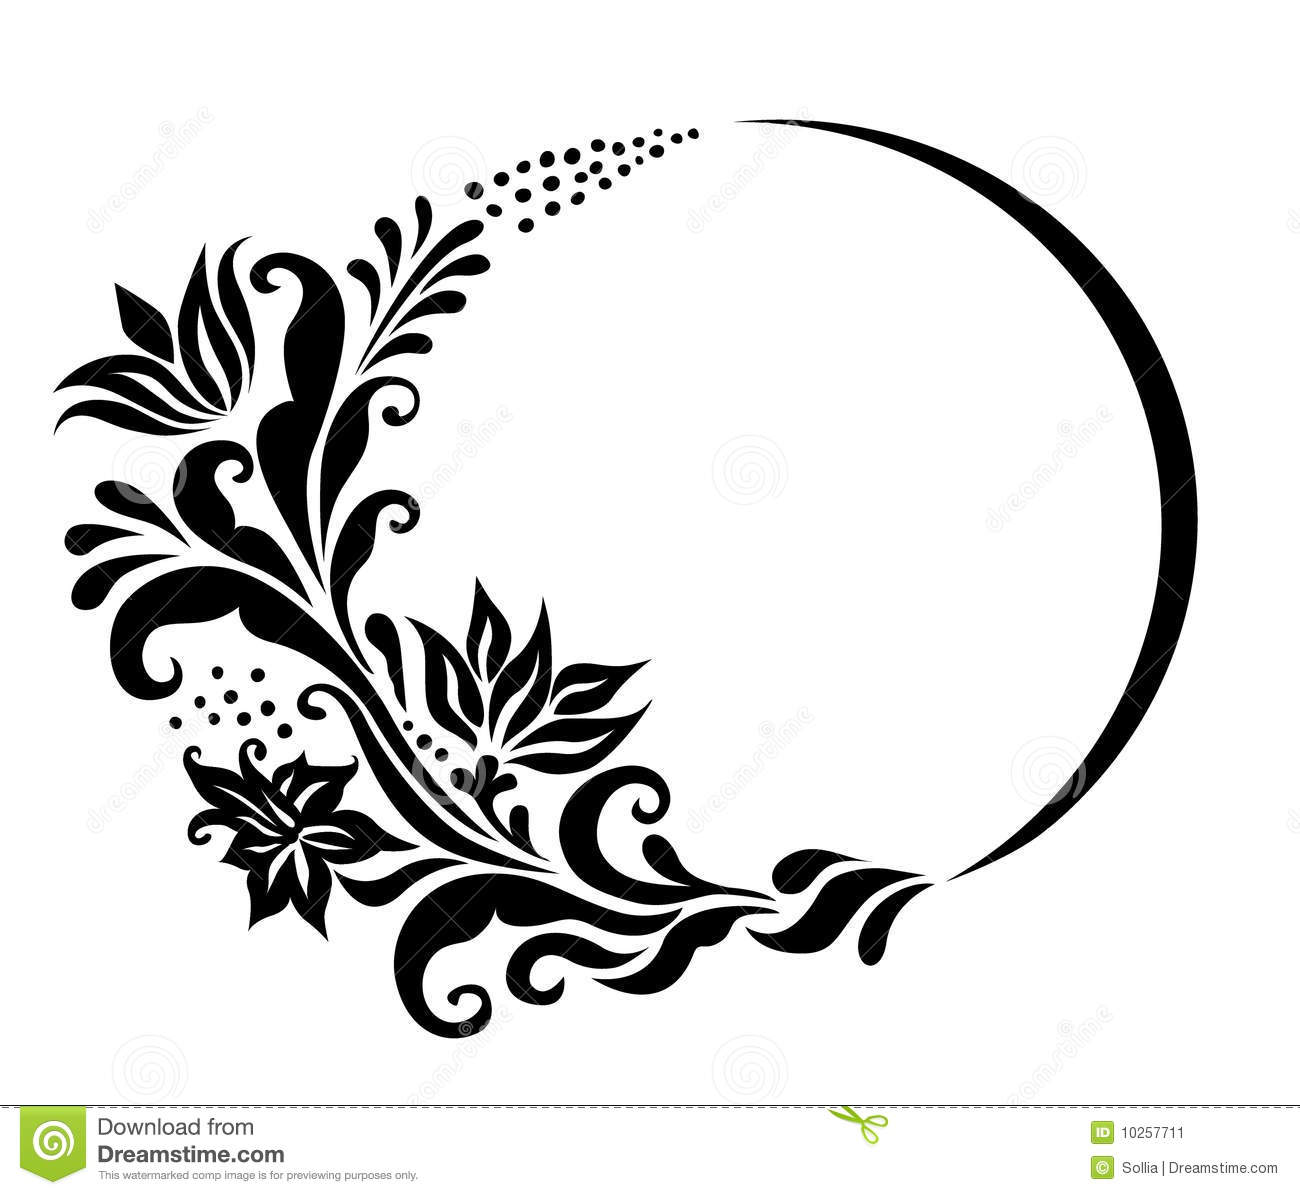 15 Black And White Floral Border Vector Free Images ...